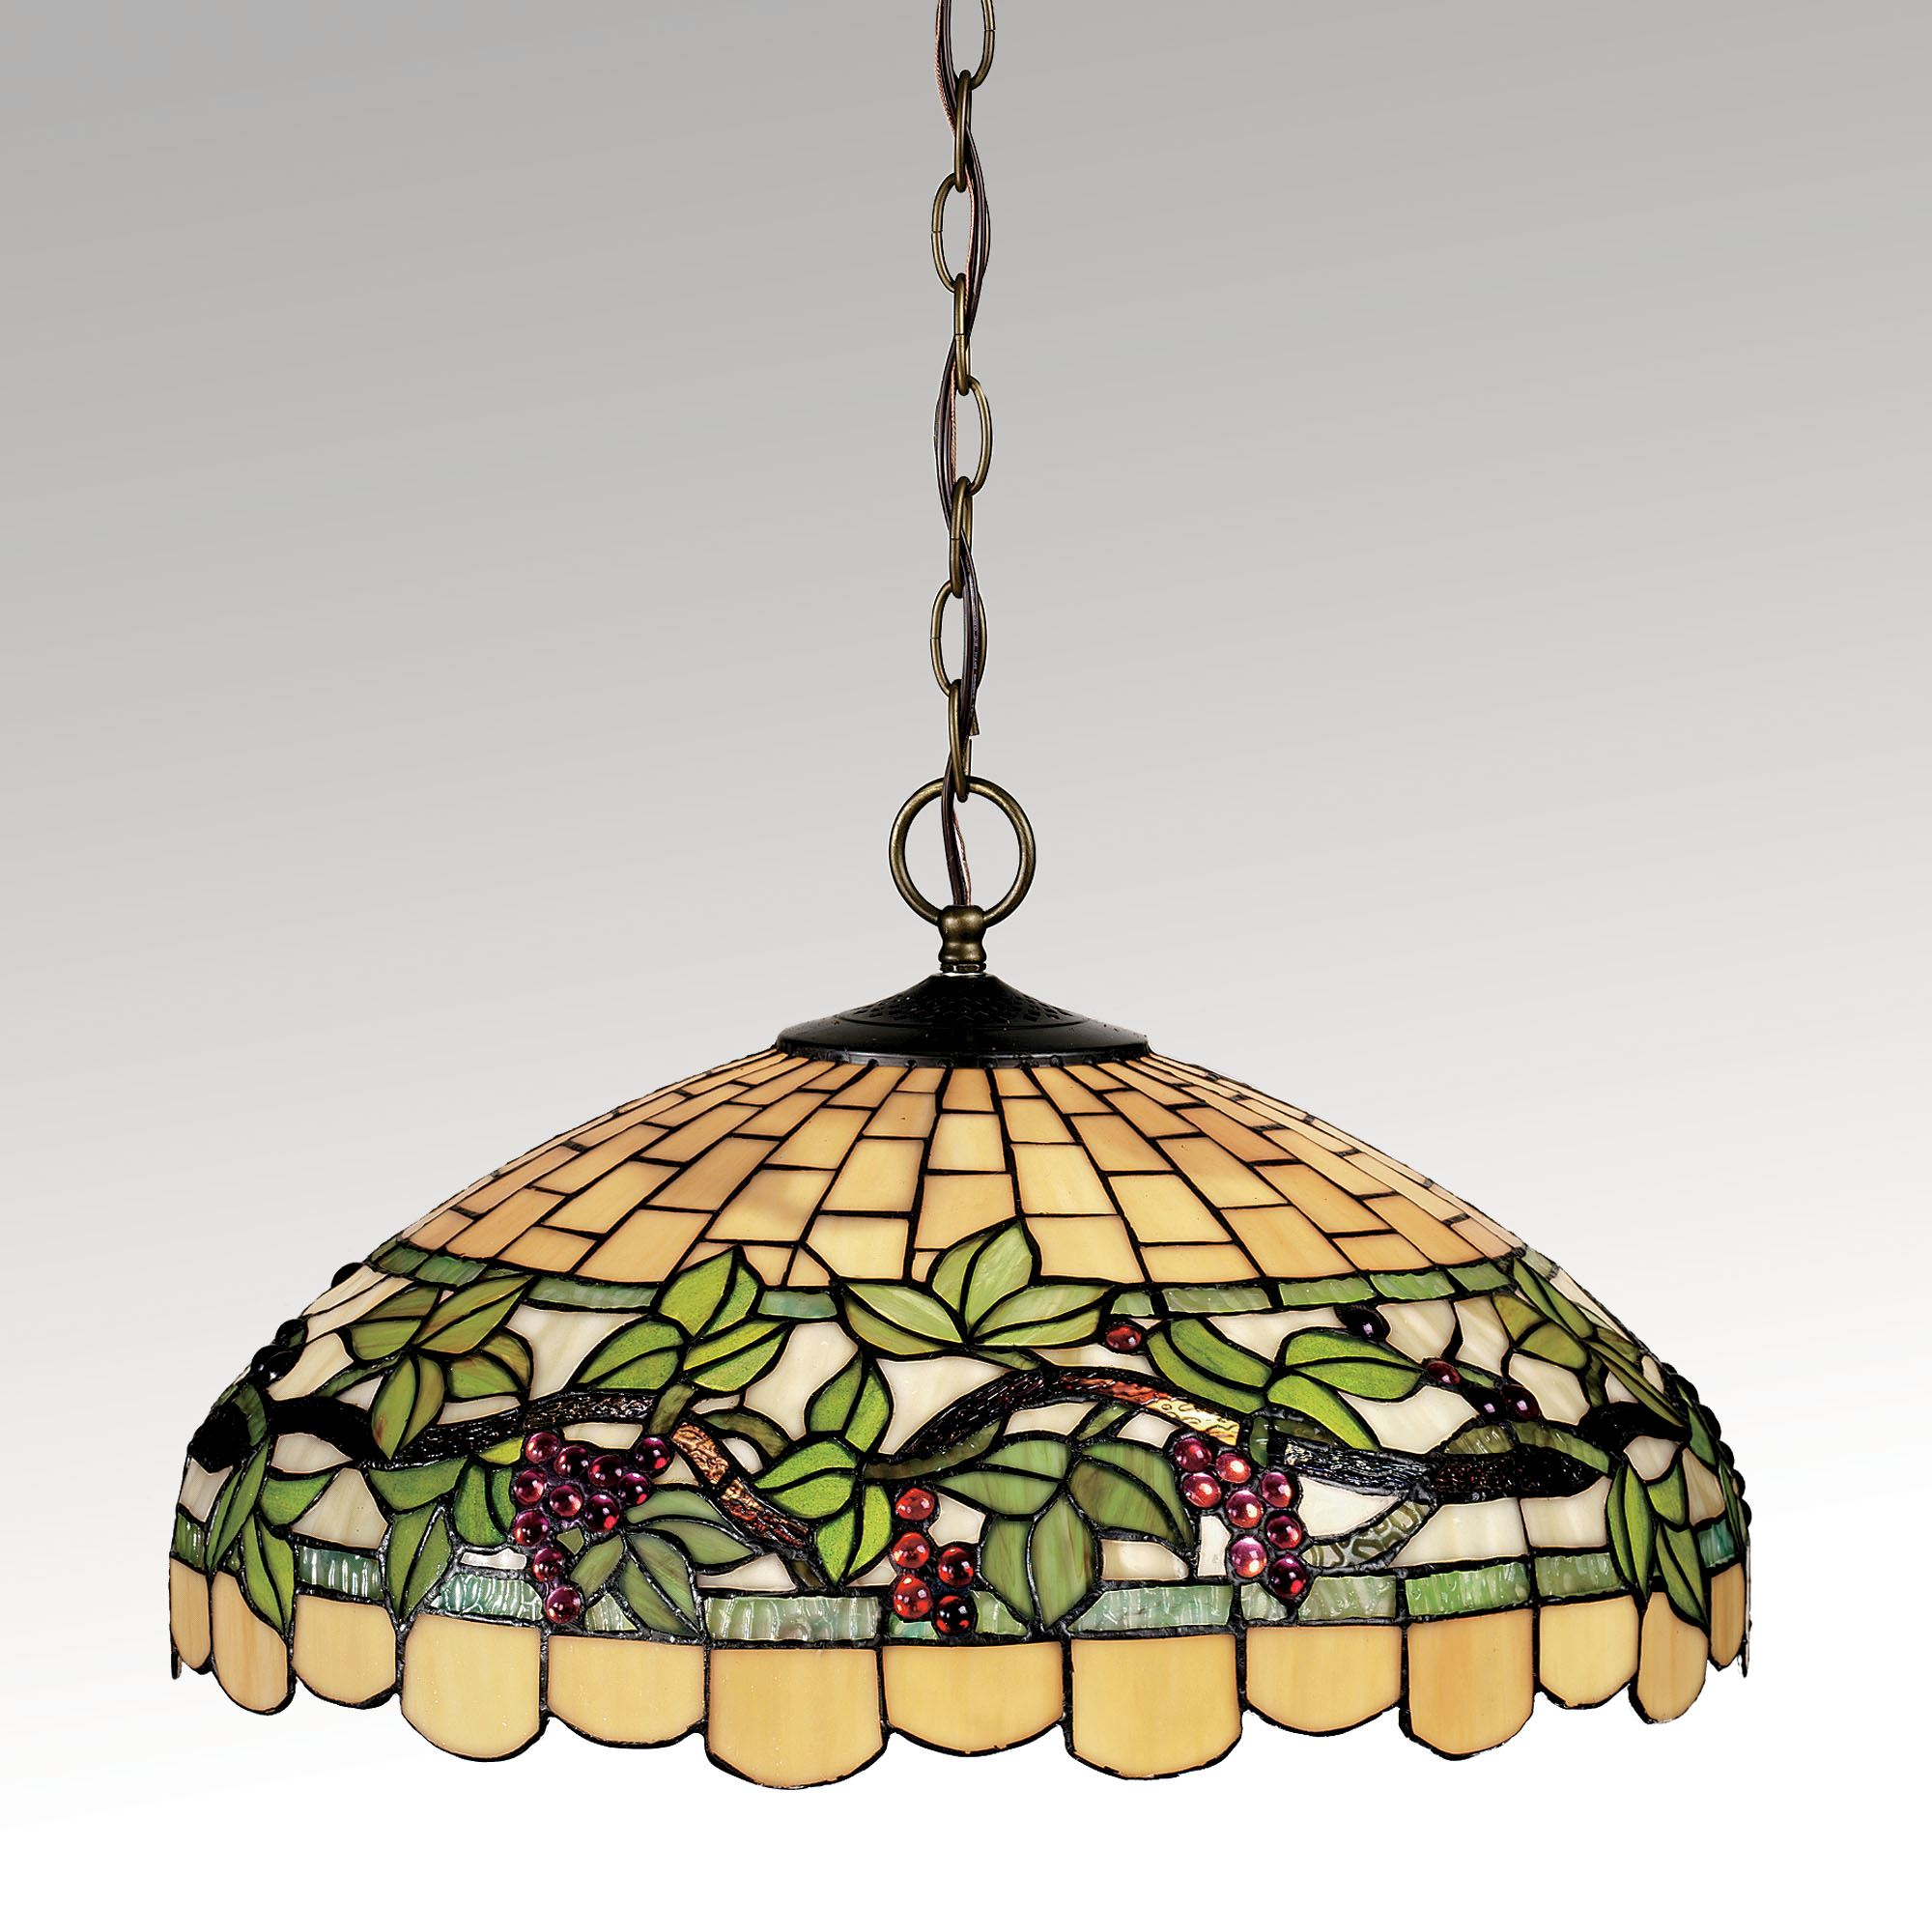 stained contemporary item classic pendant glass island from retro in modern lights lamp kitchen hanging lamps